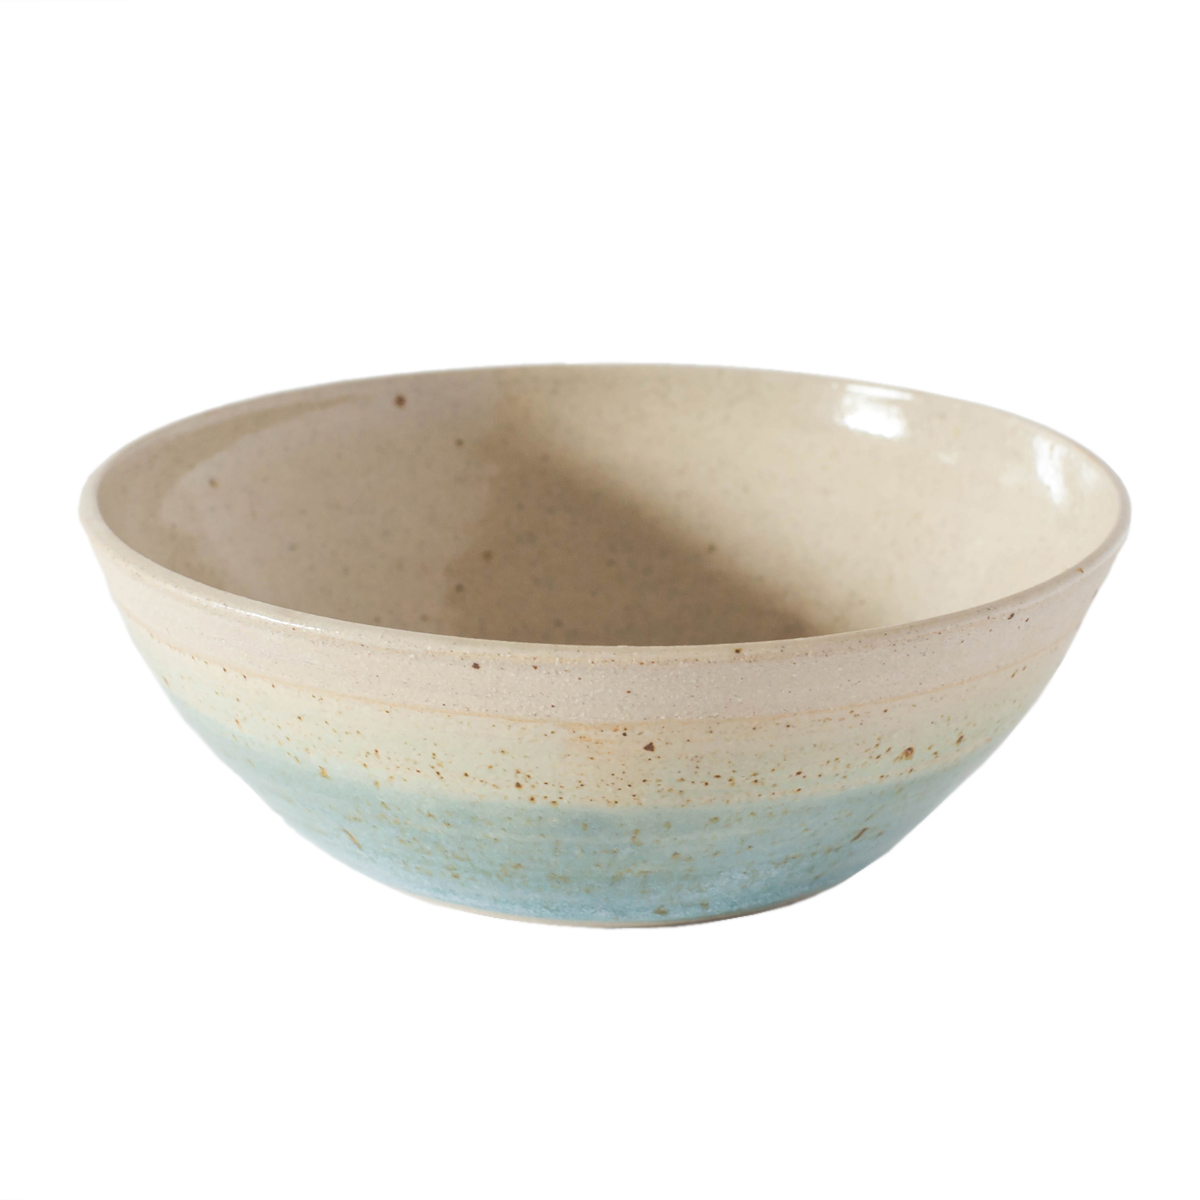 libby-ballard-speckled-ceramic-pasta-bowl